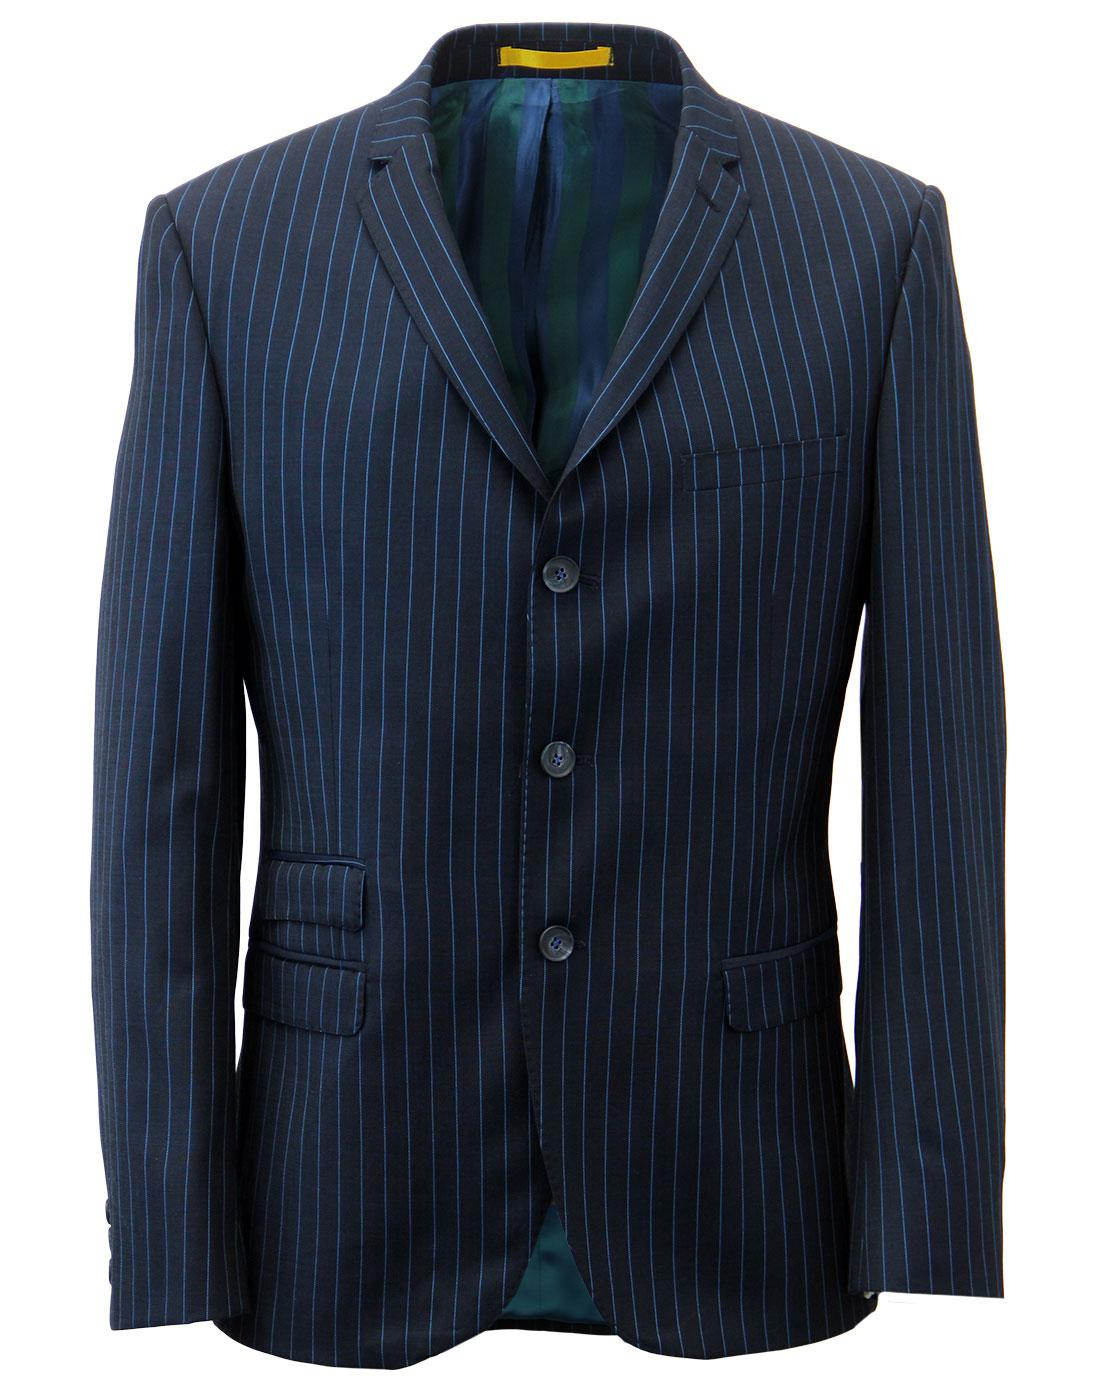 MADCAP ENGLAND Electric Pinstripe Mod Suit Jacket